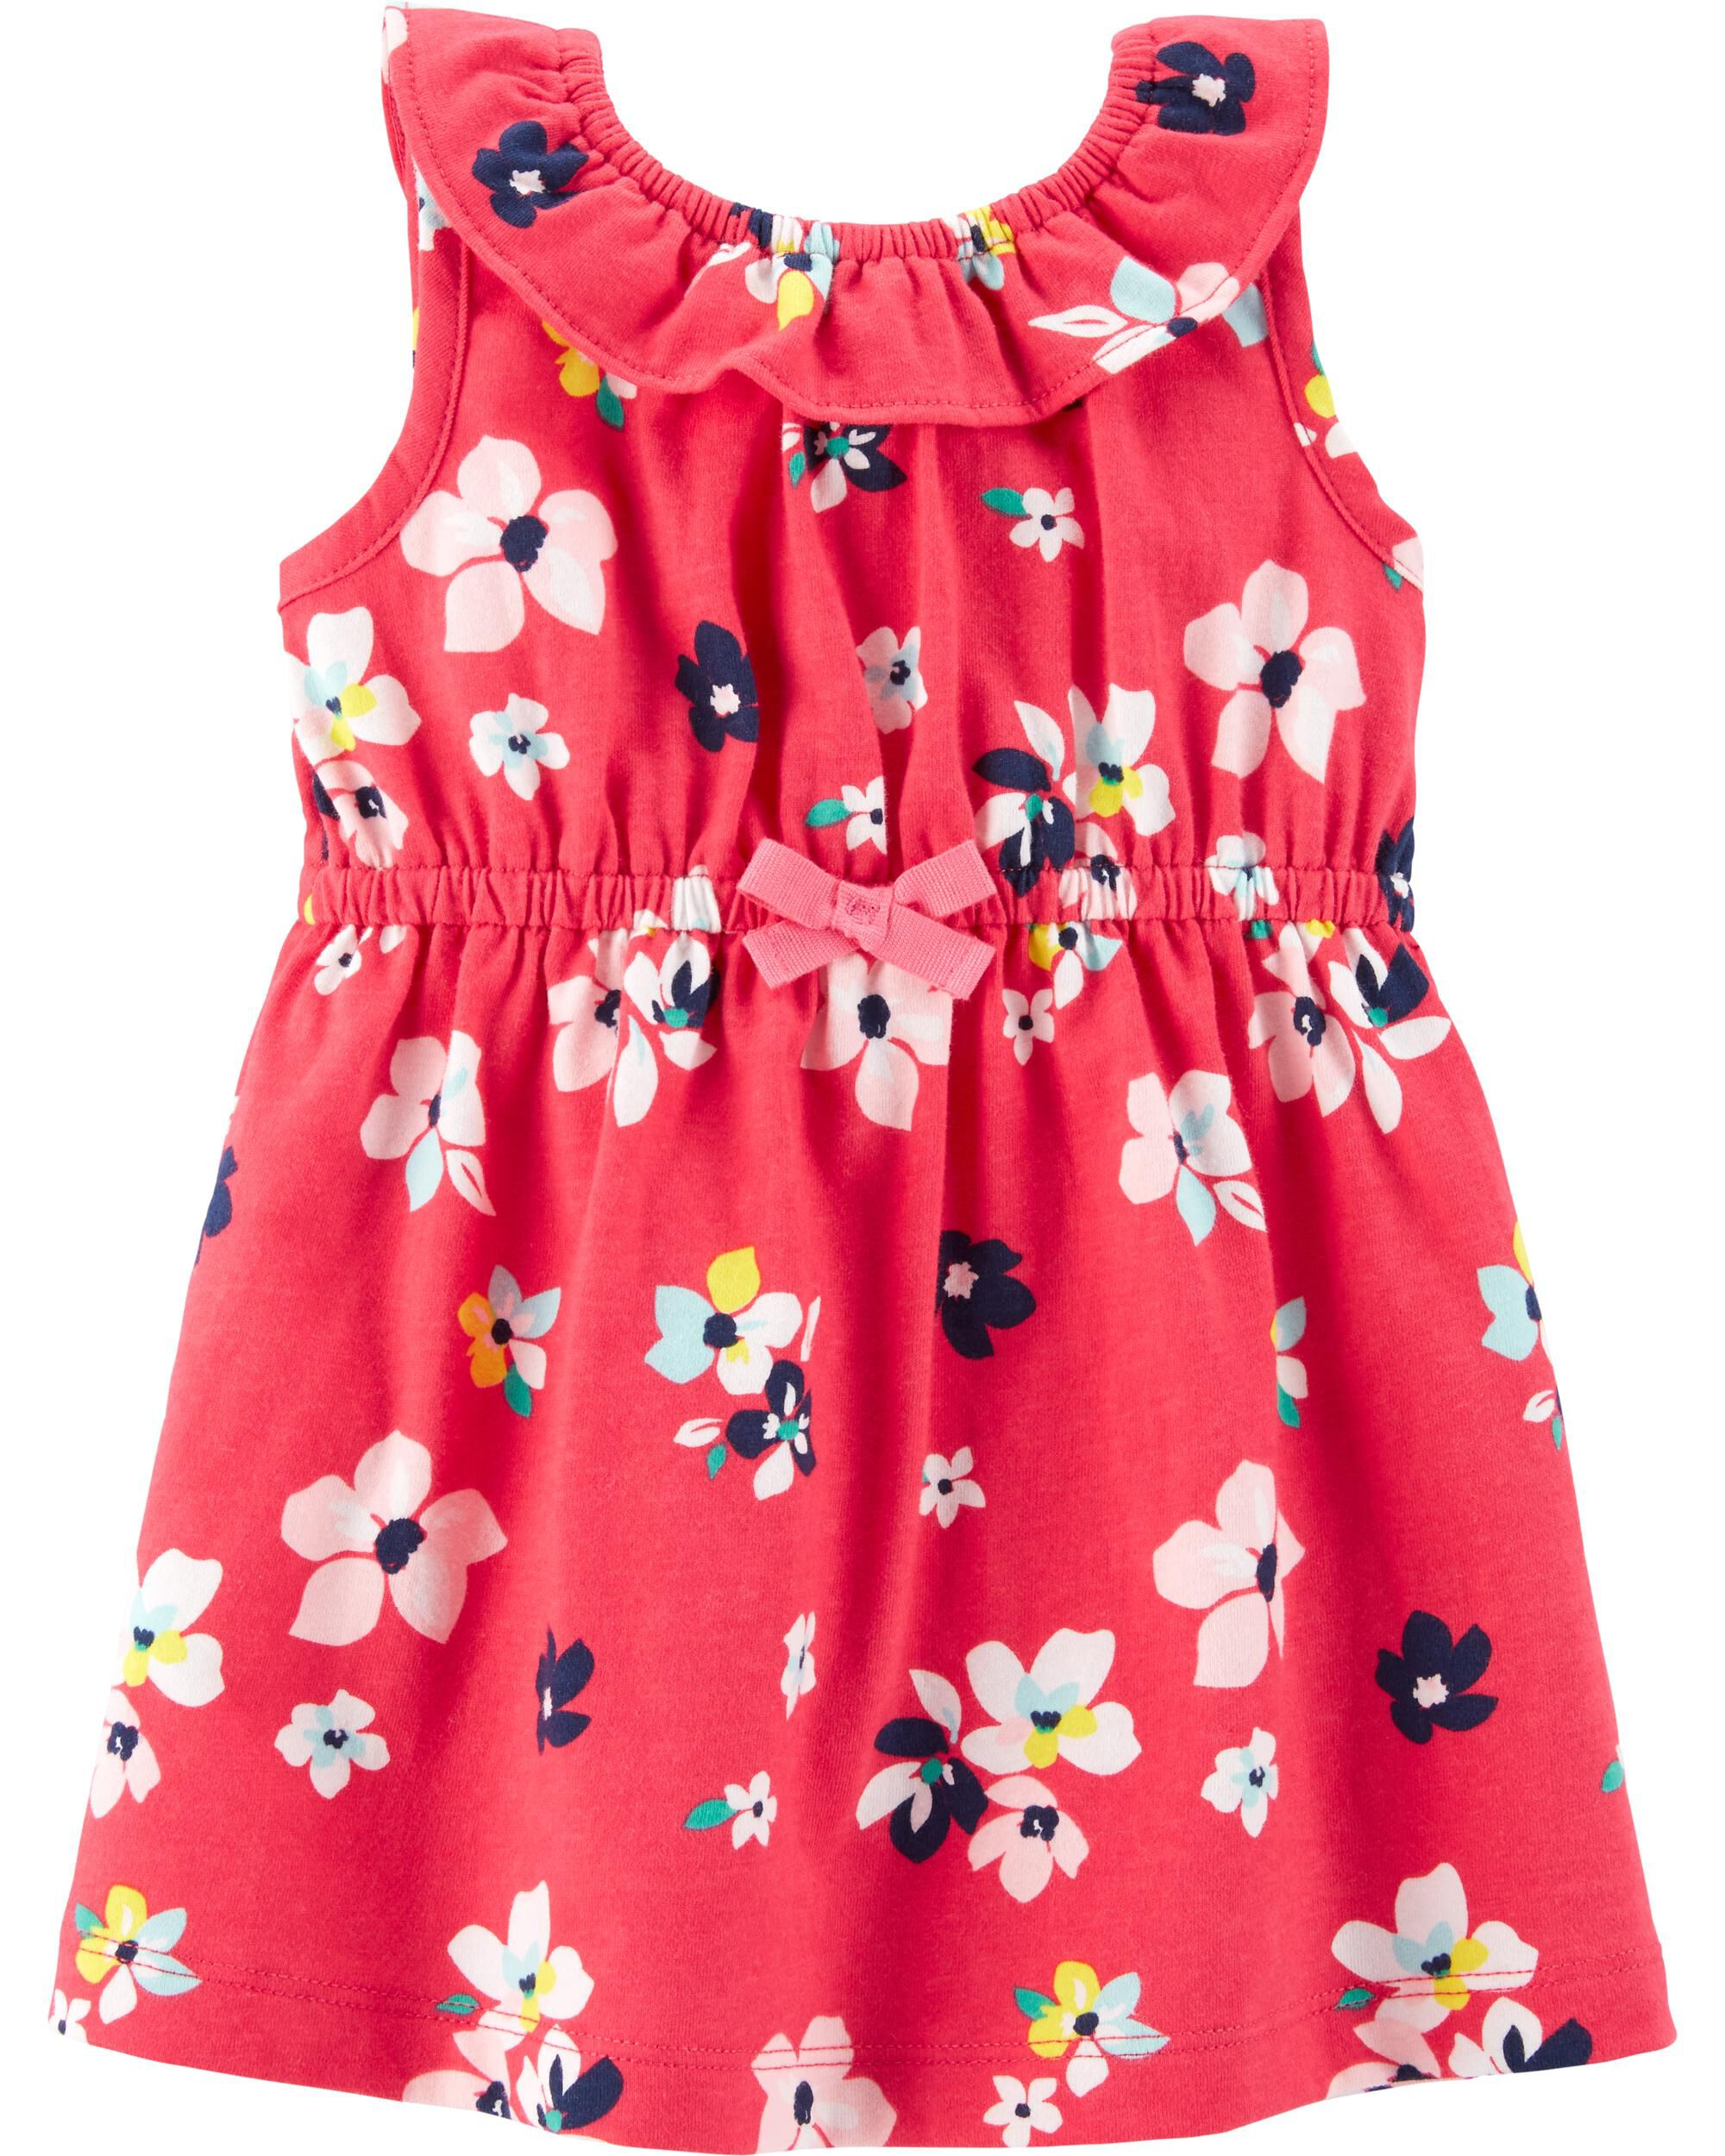 Baby Clothes, Shoes & Accessories Carter's Baby Girl Skirt 6m Tropical Skirt With Built In Pants Free P+p Big Clearance Sale